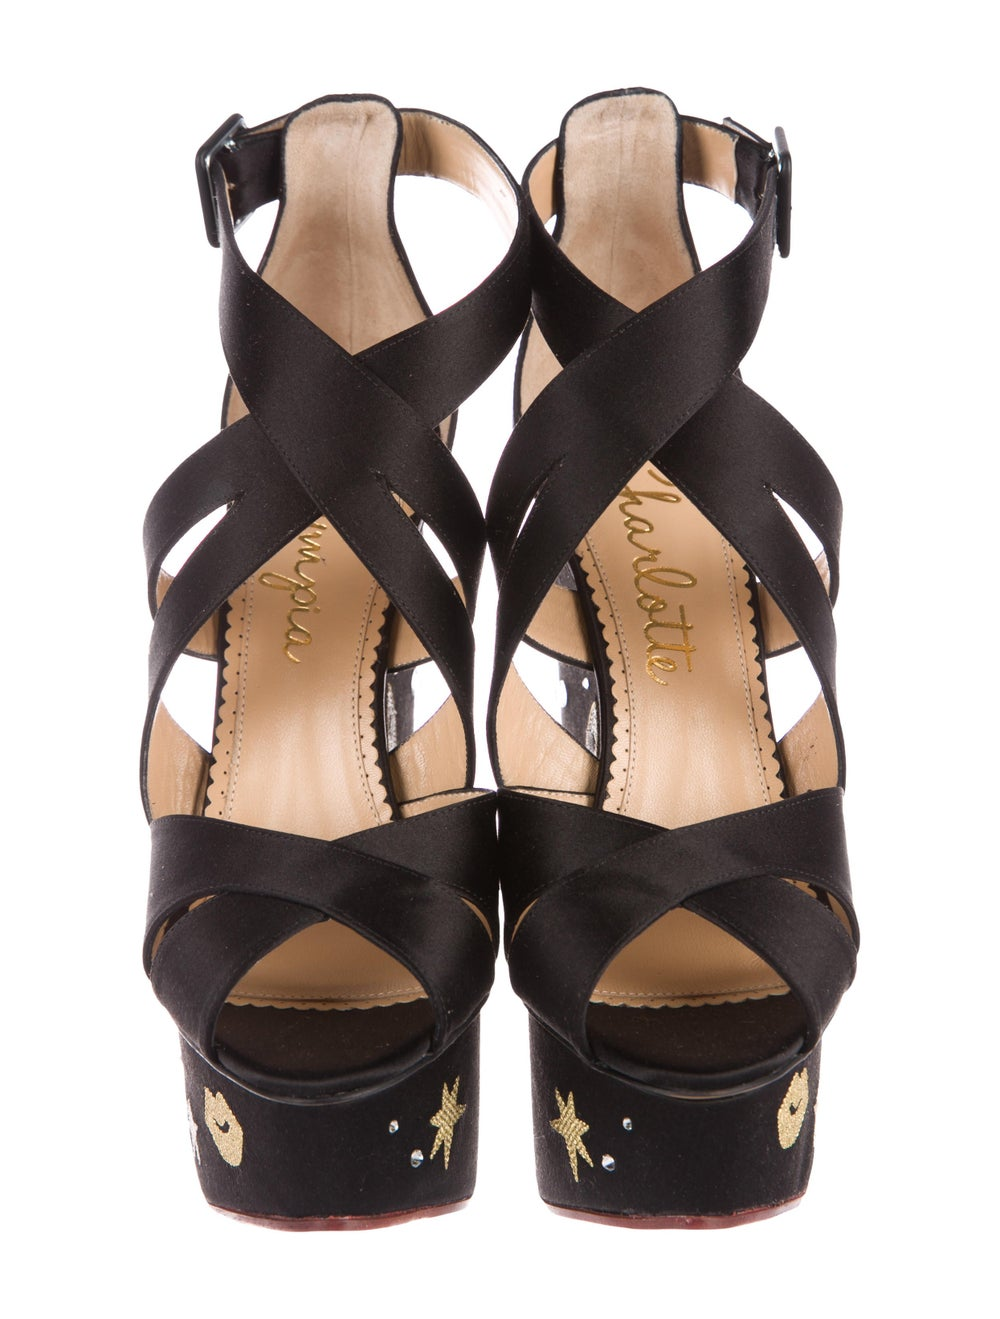 Charlotte Olympia Space Age Satin Wedges Black - image 3